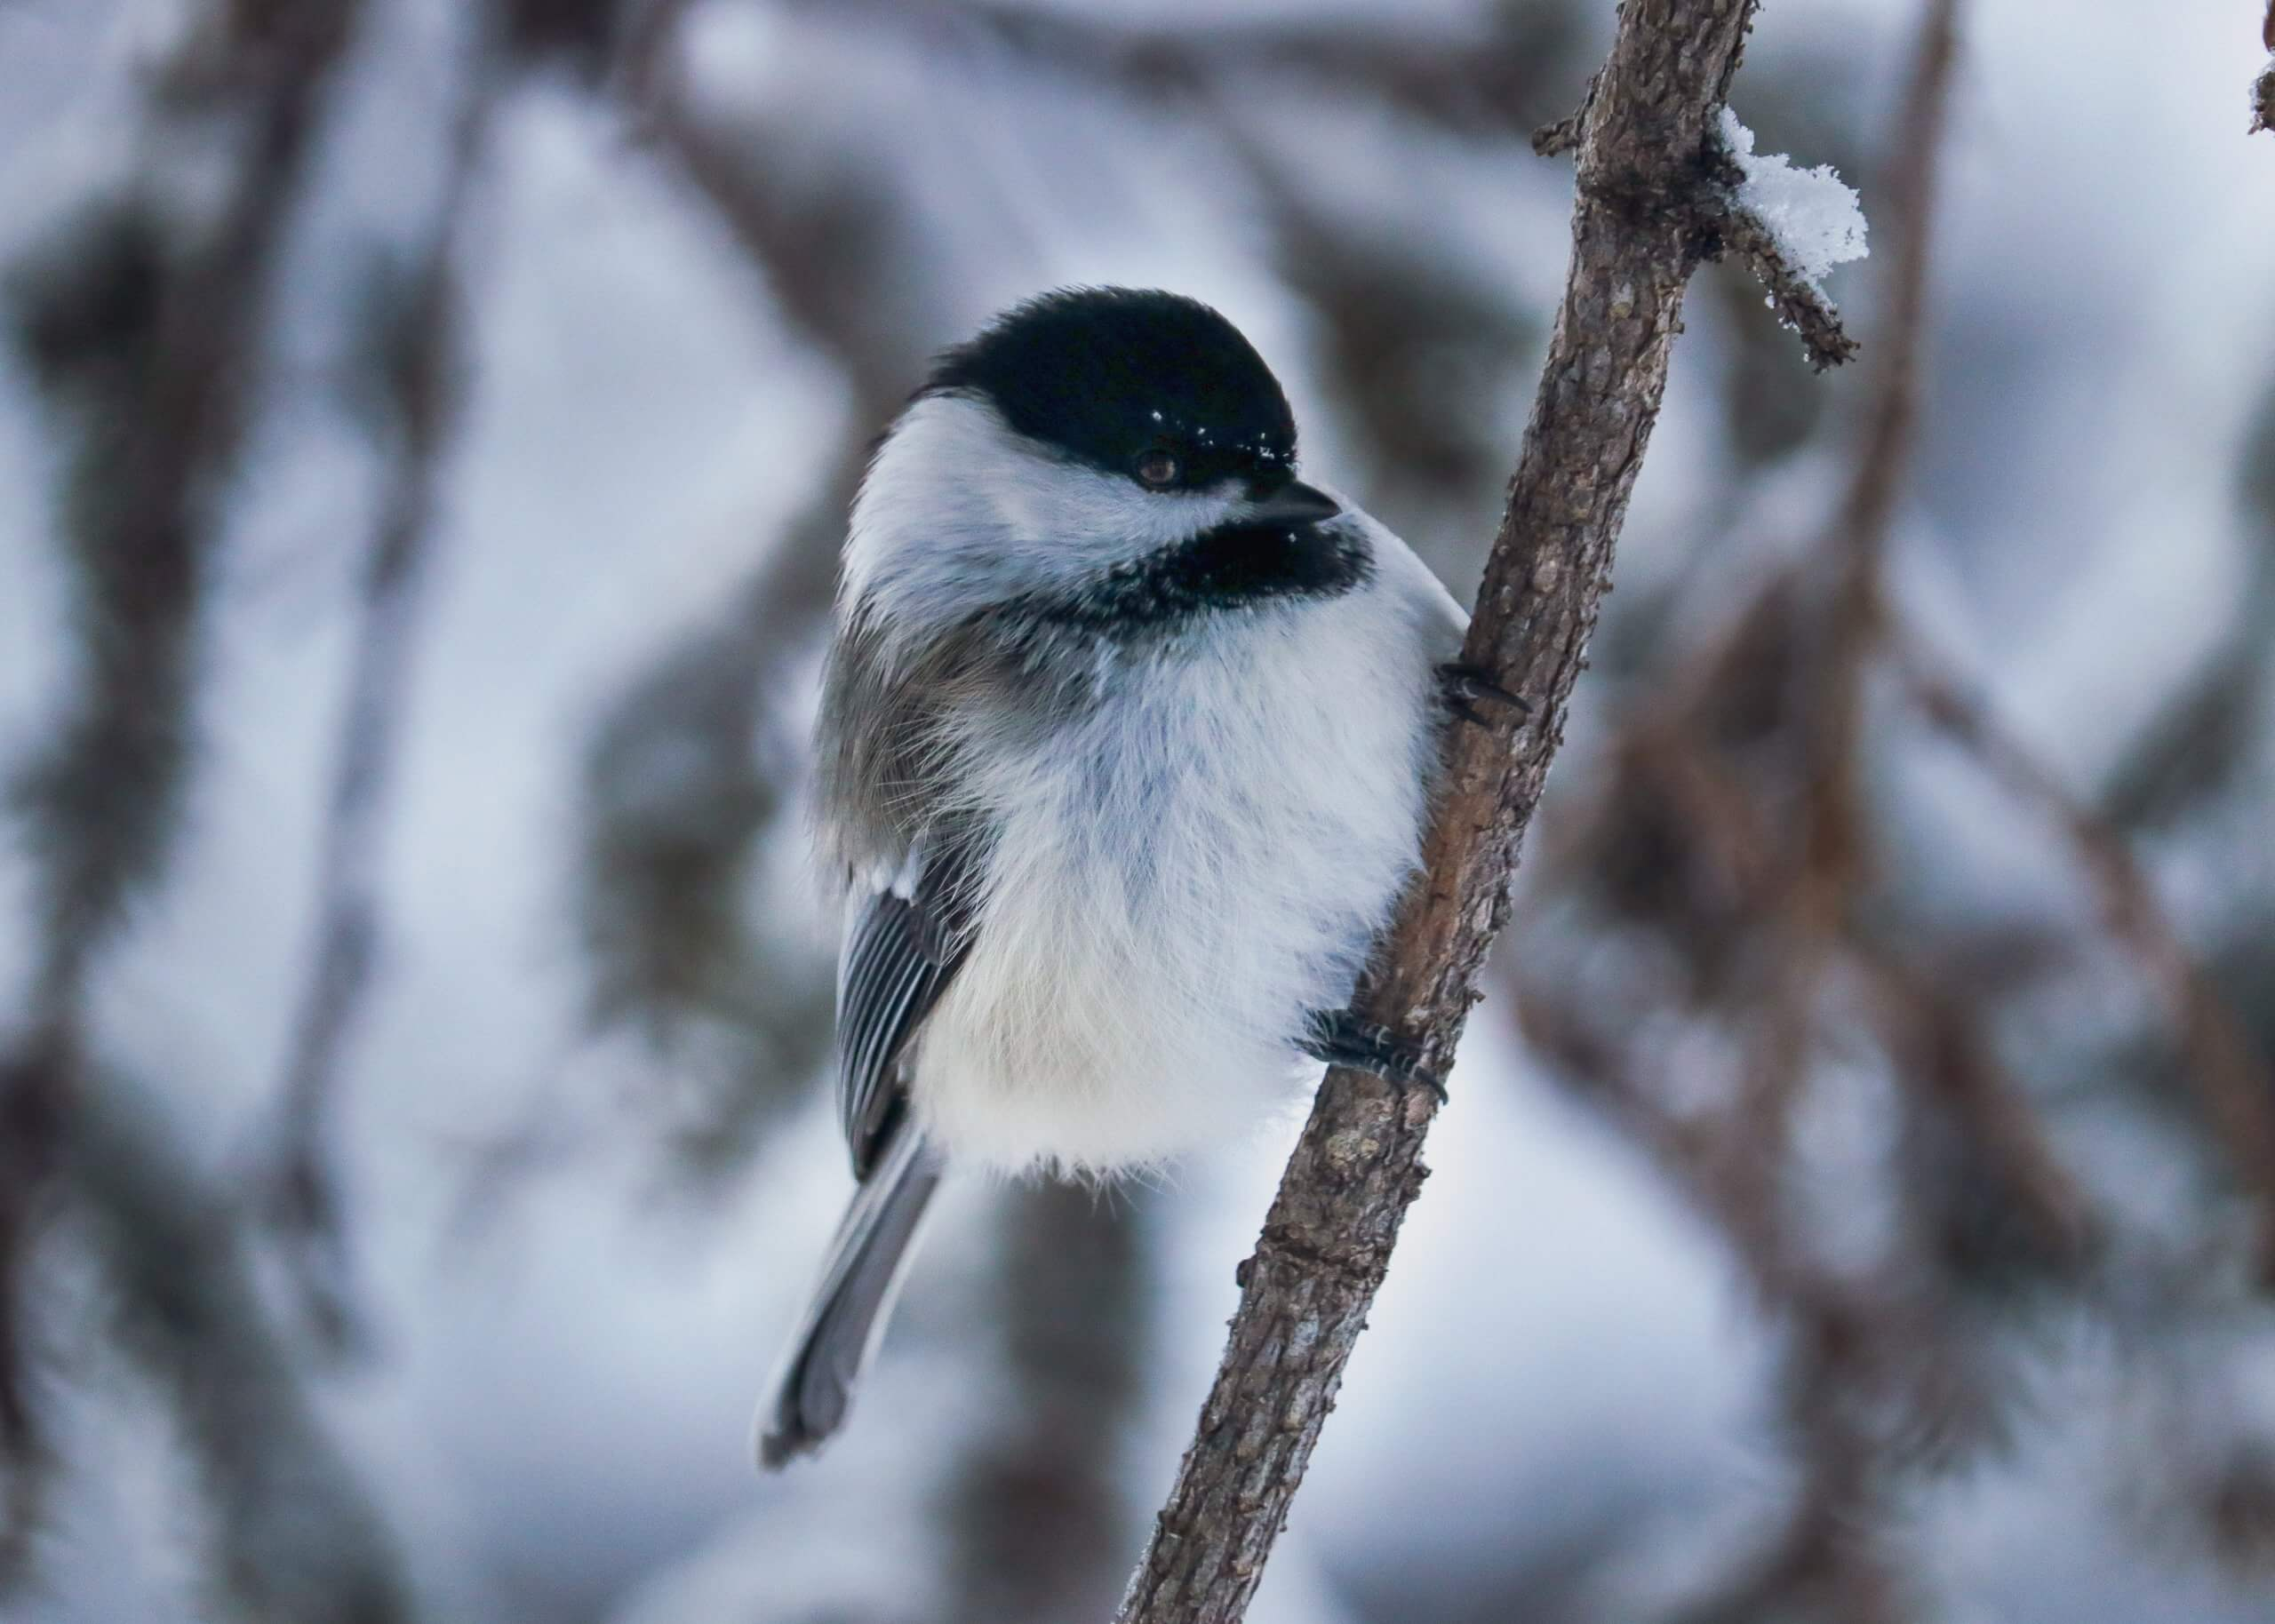 A chickadee bird hangs from a spruce tree branch in between feedings